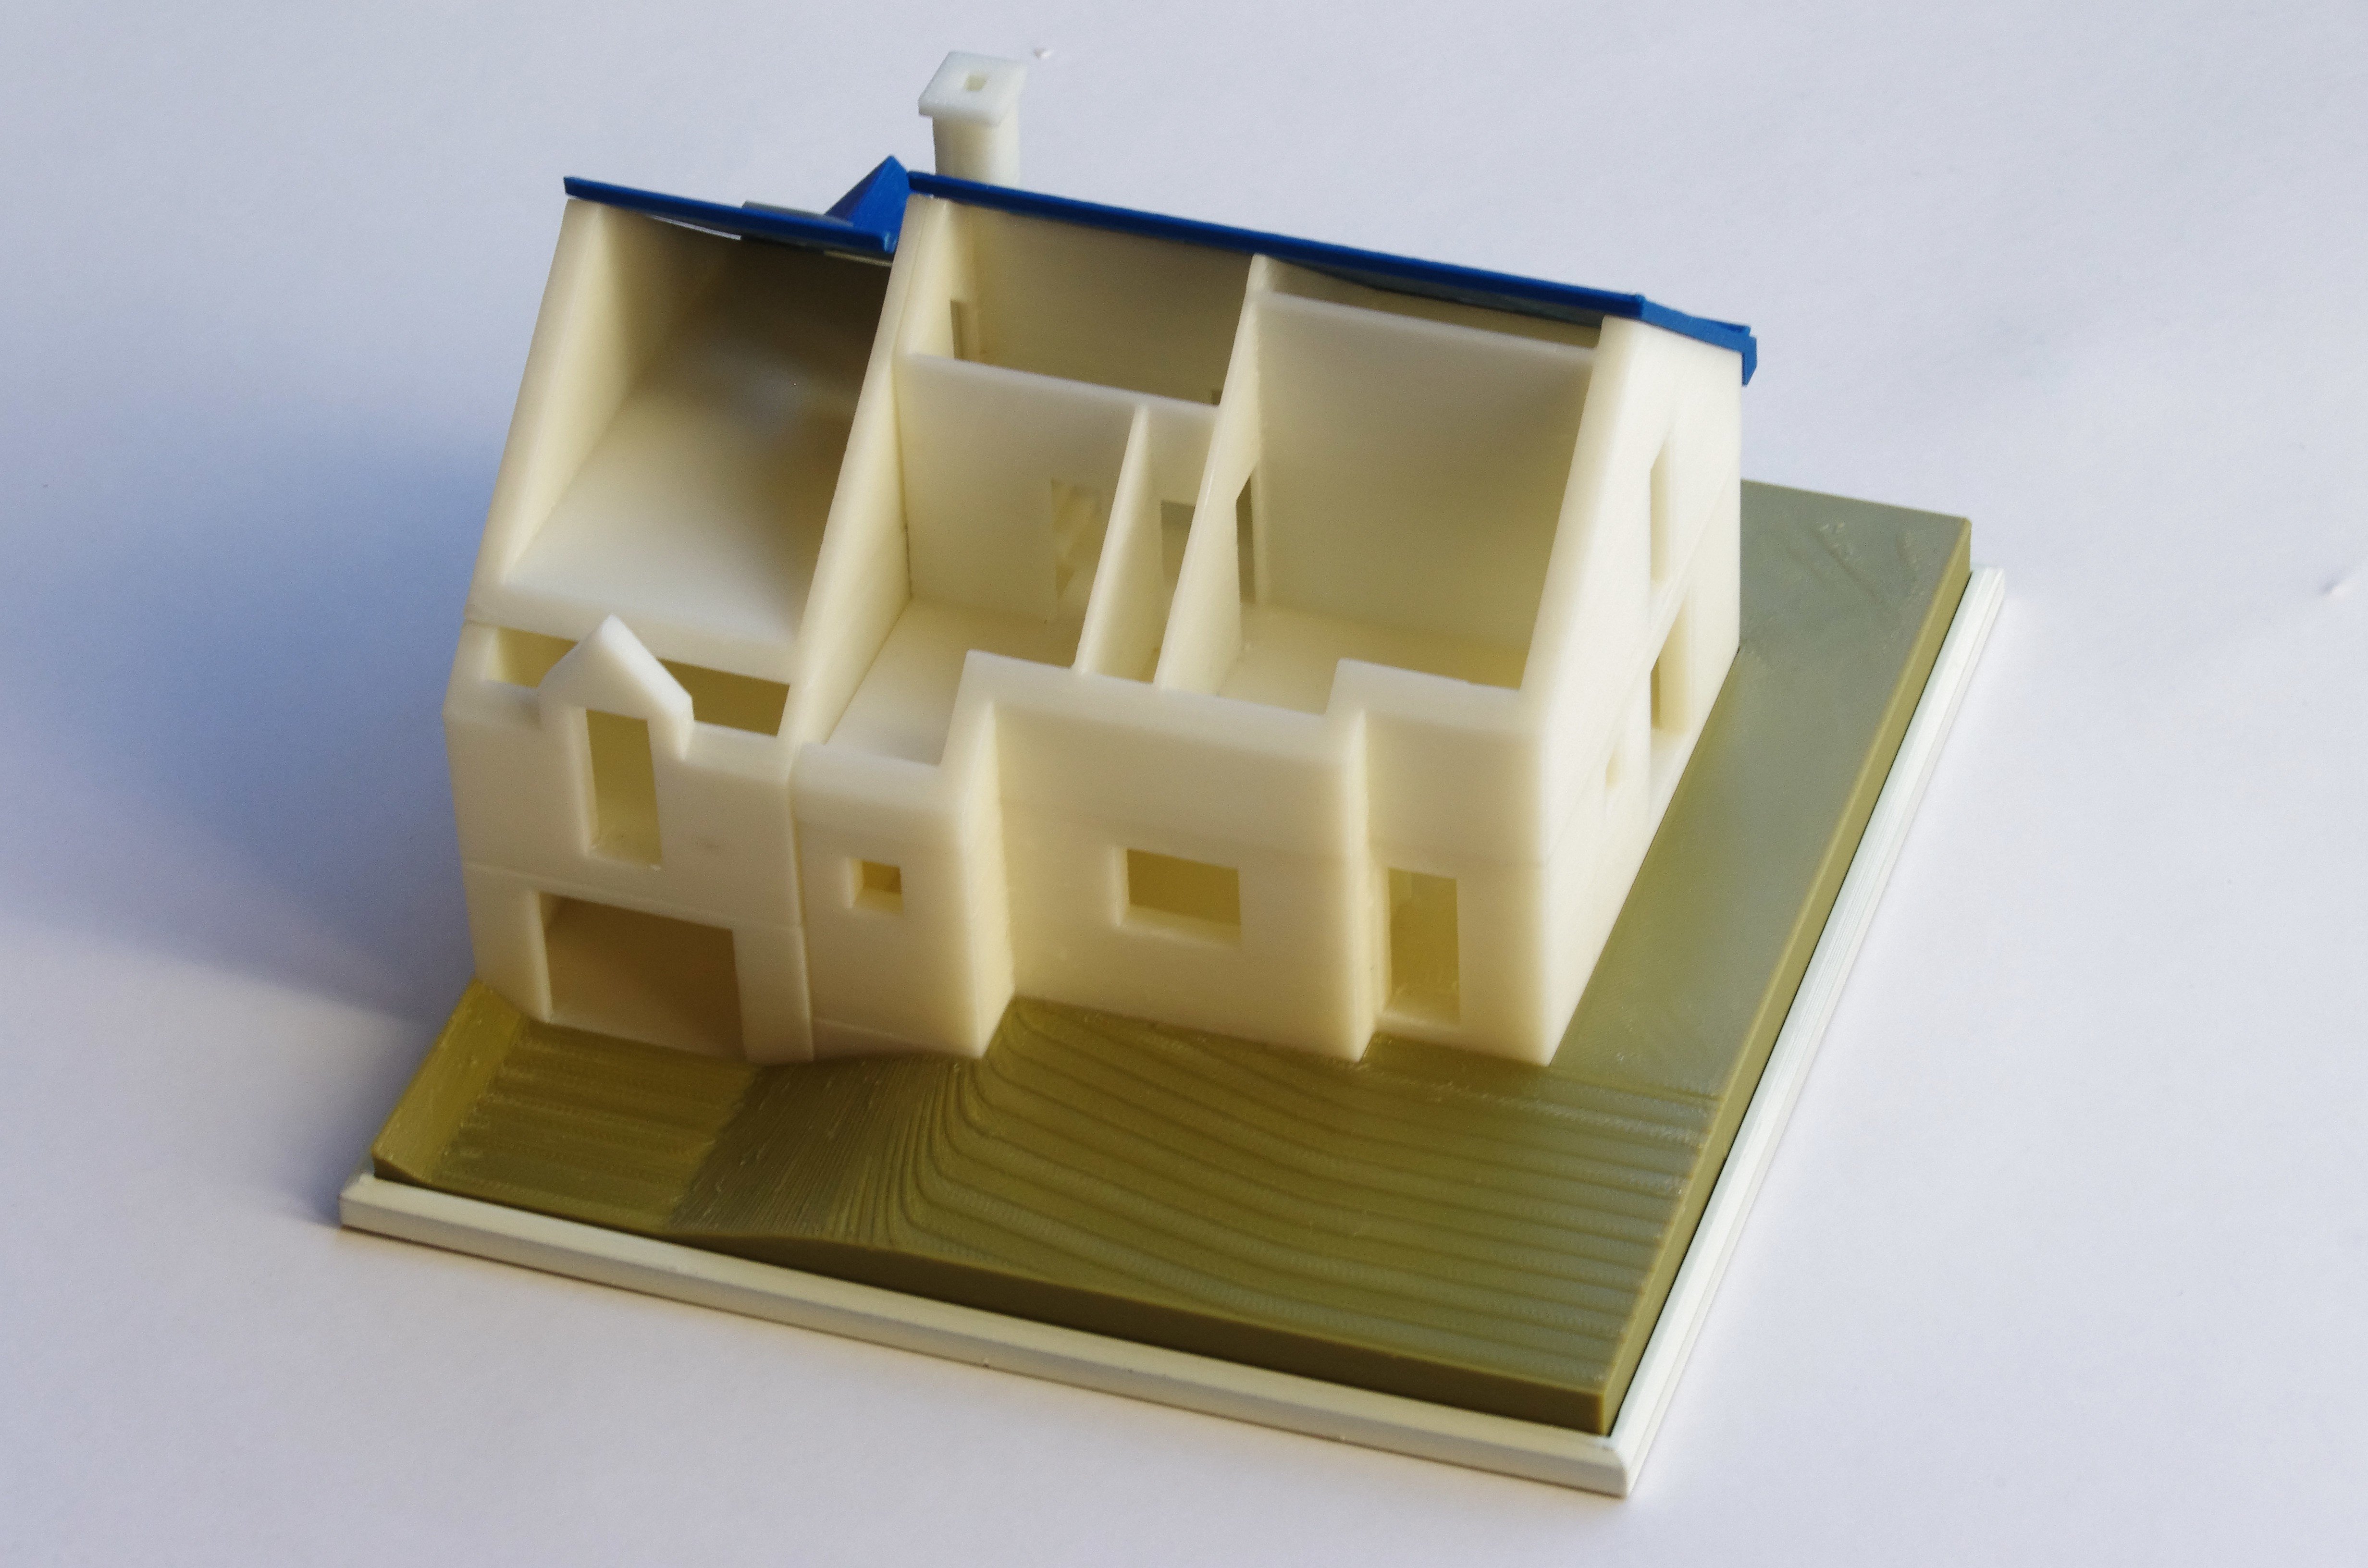 IMGP4612_DxO_red.jpg Download free STL file Semi-detached house • 3D printer model, mcbat